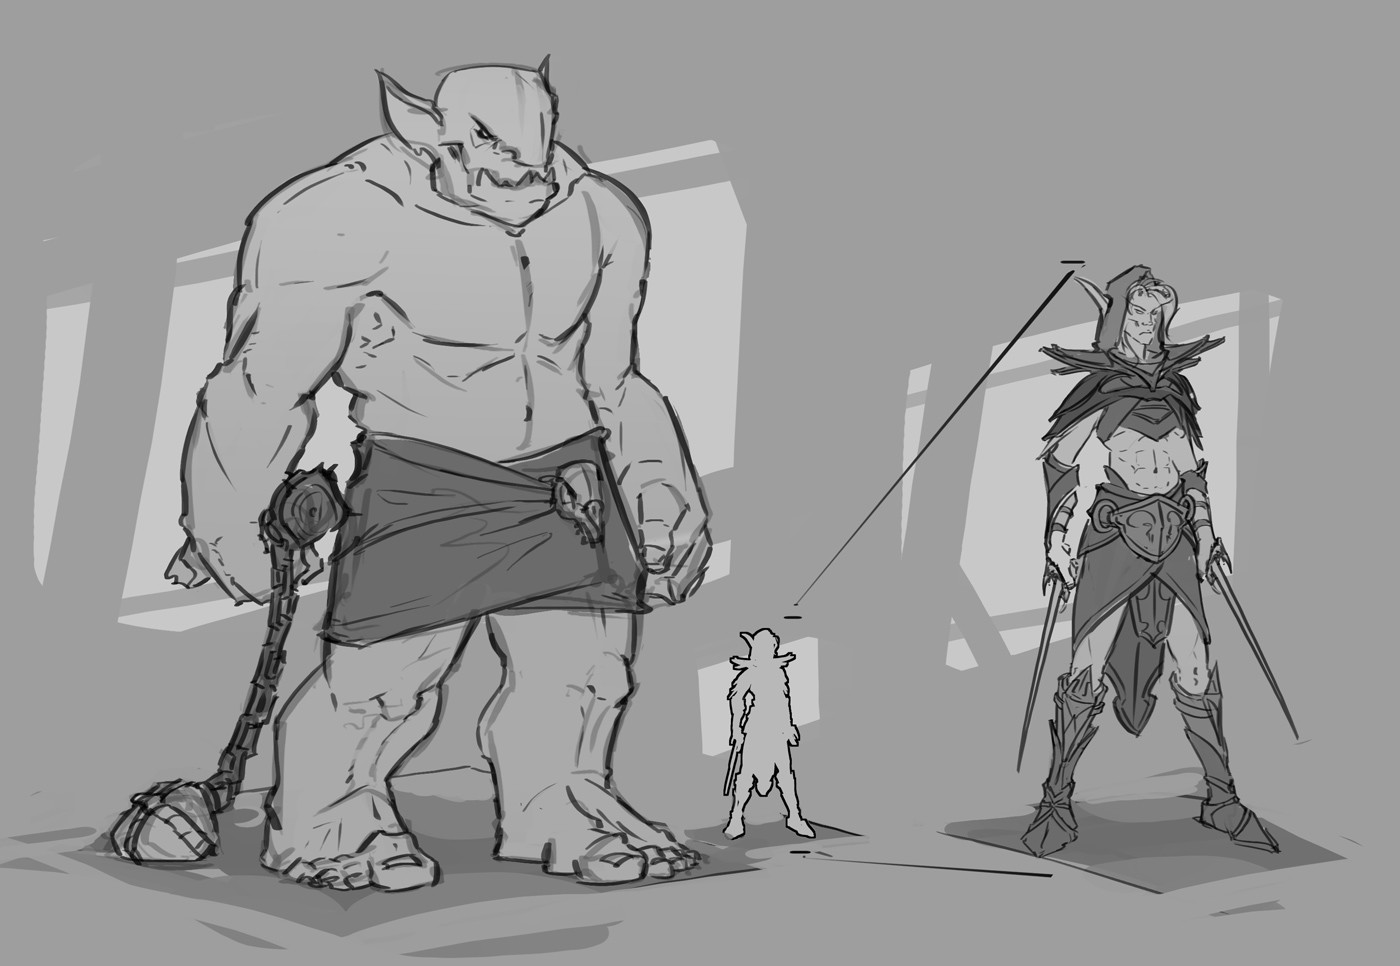 Some fast sketched designs to keep the track while doing the illustration